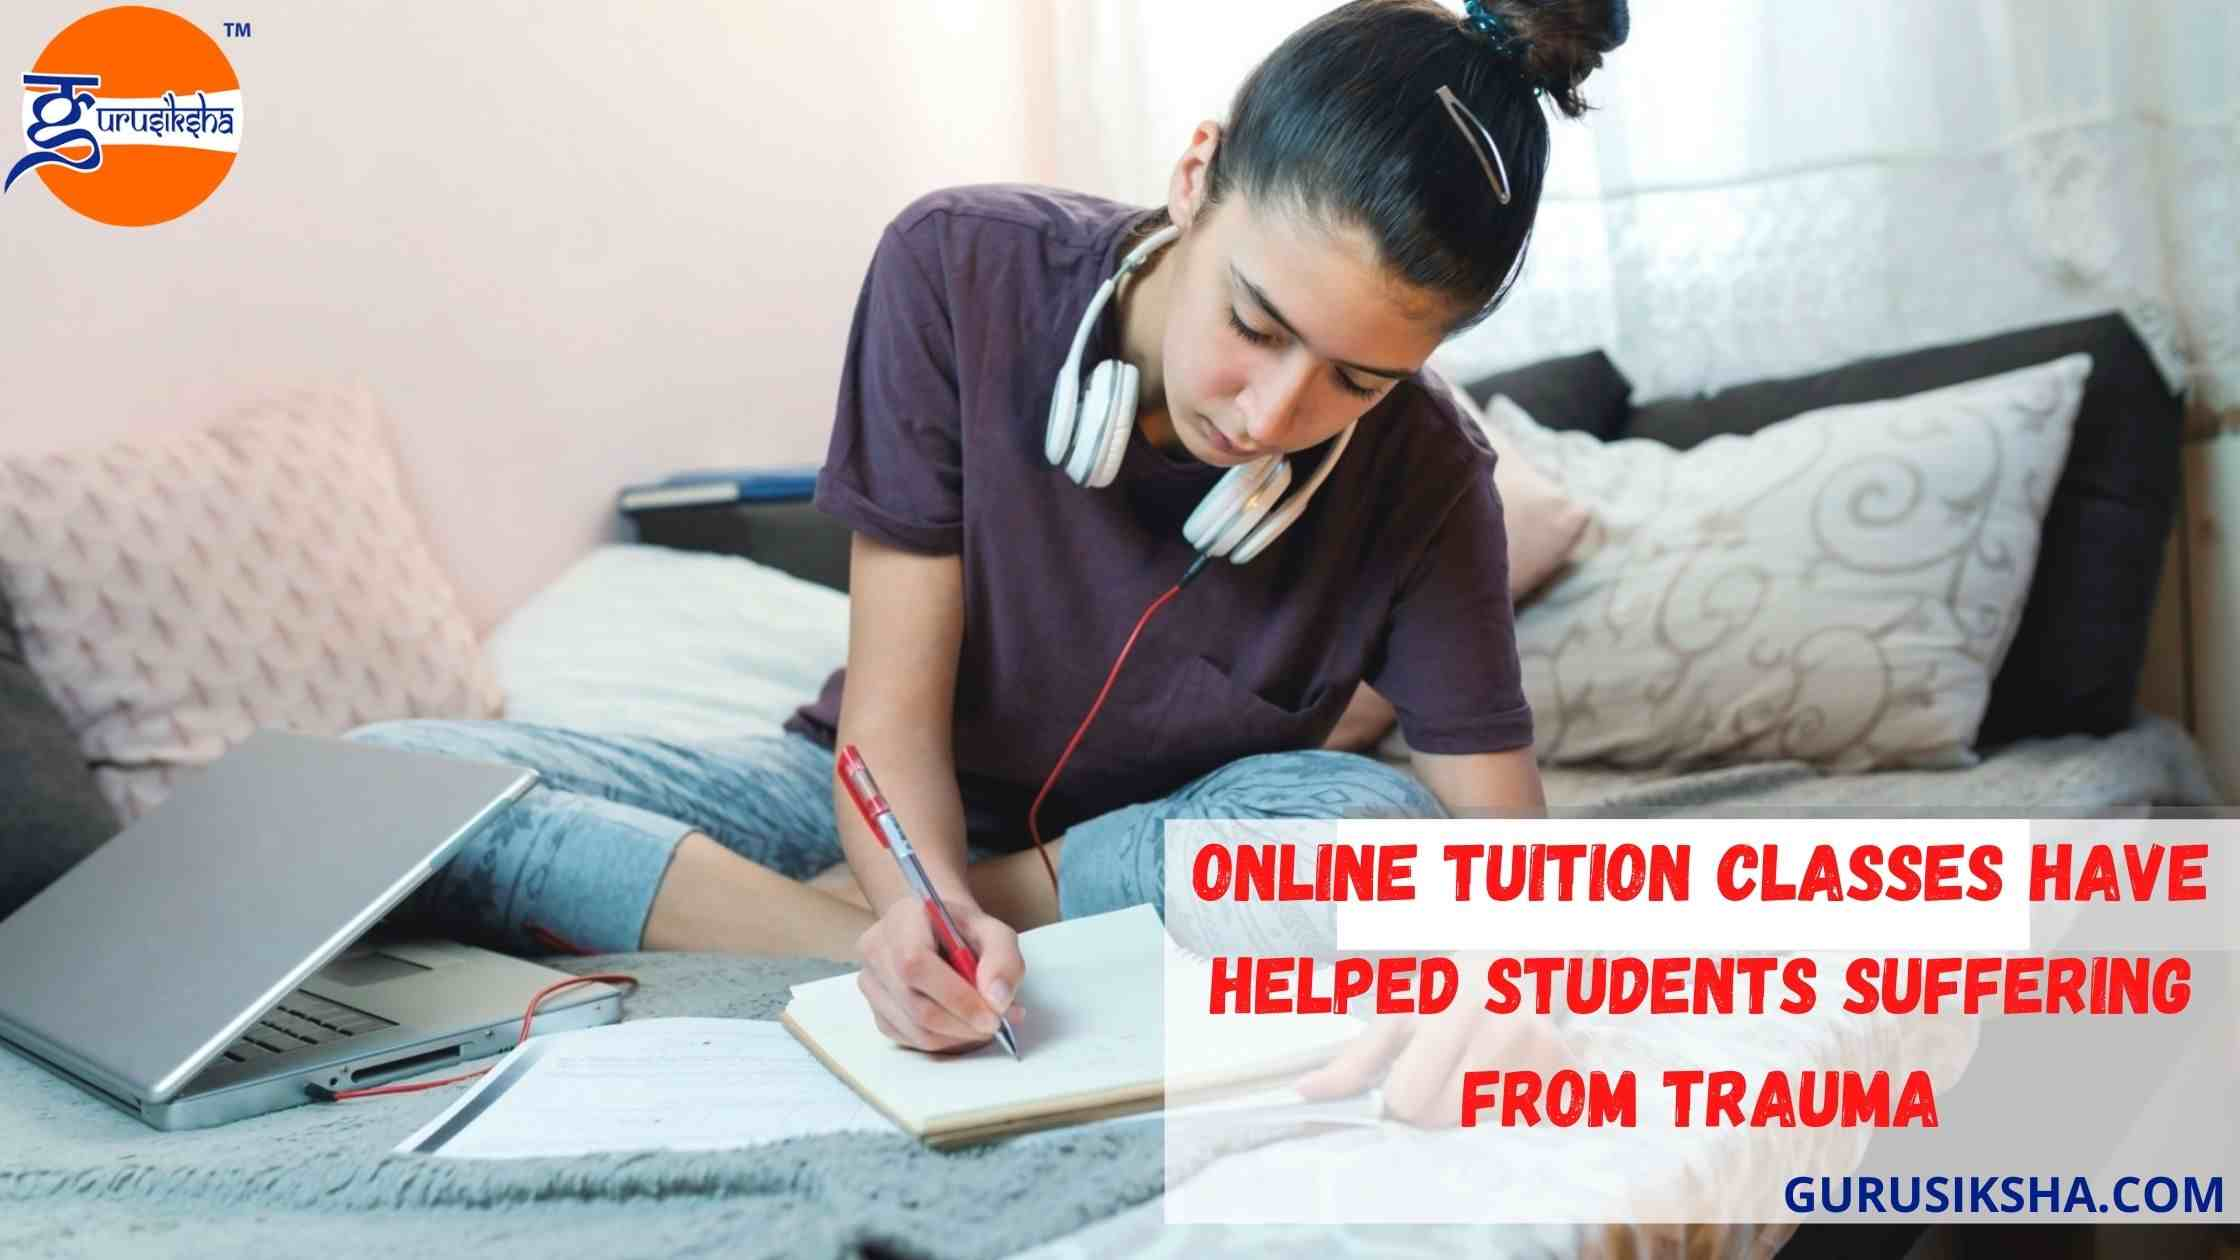 How Online Tuition Classes Have Helped Students Suffering From Trauma?